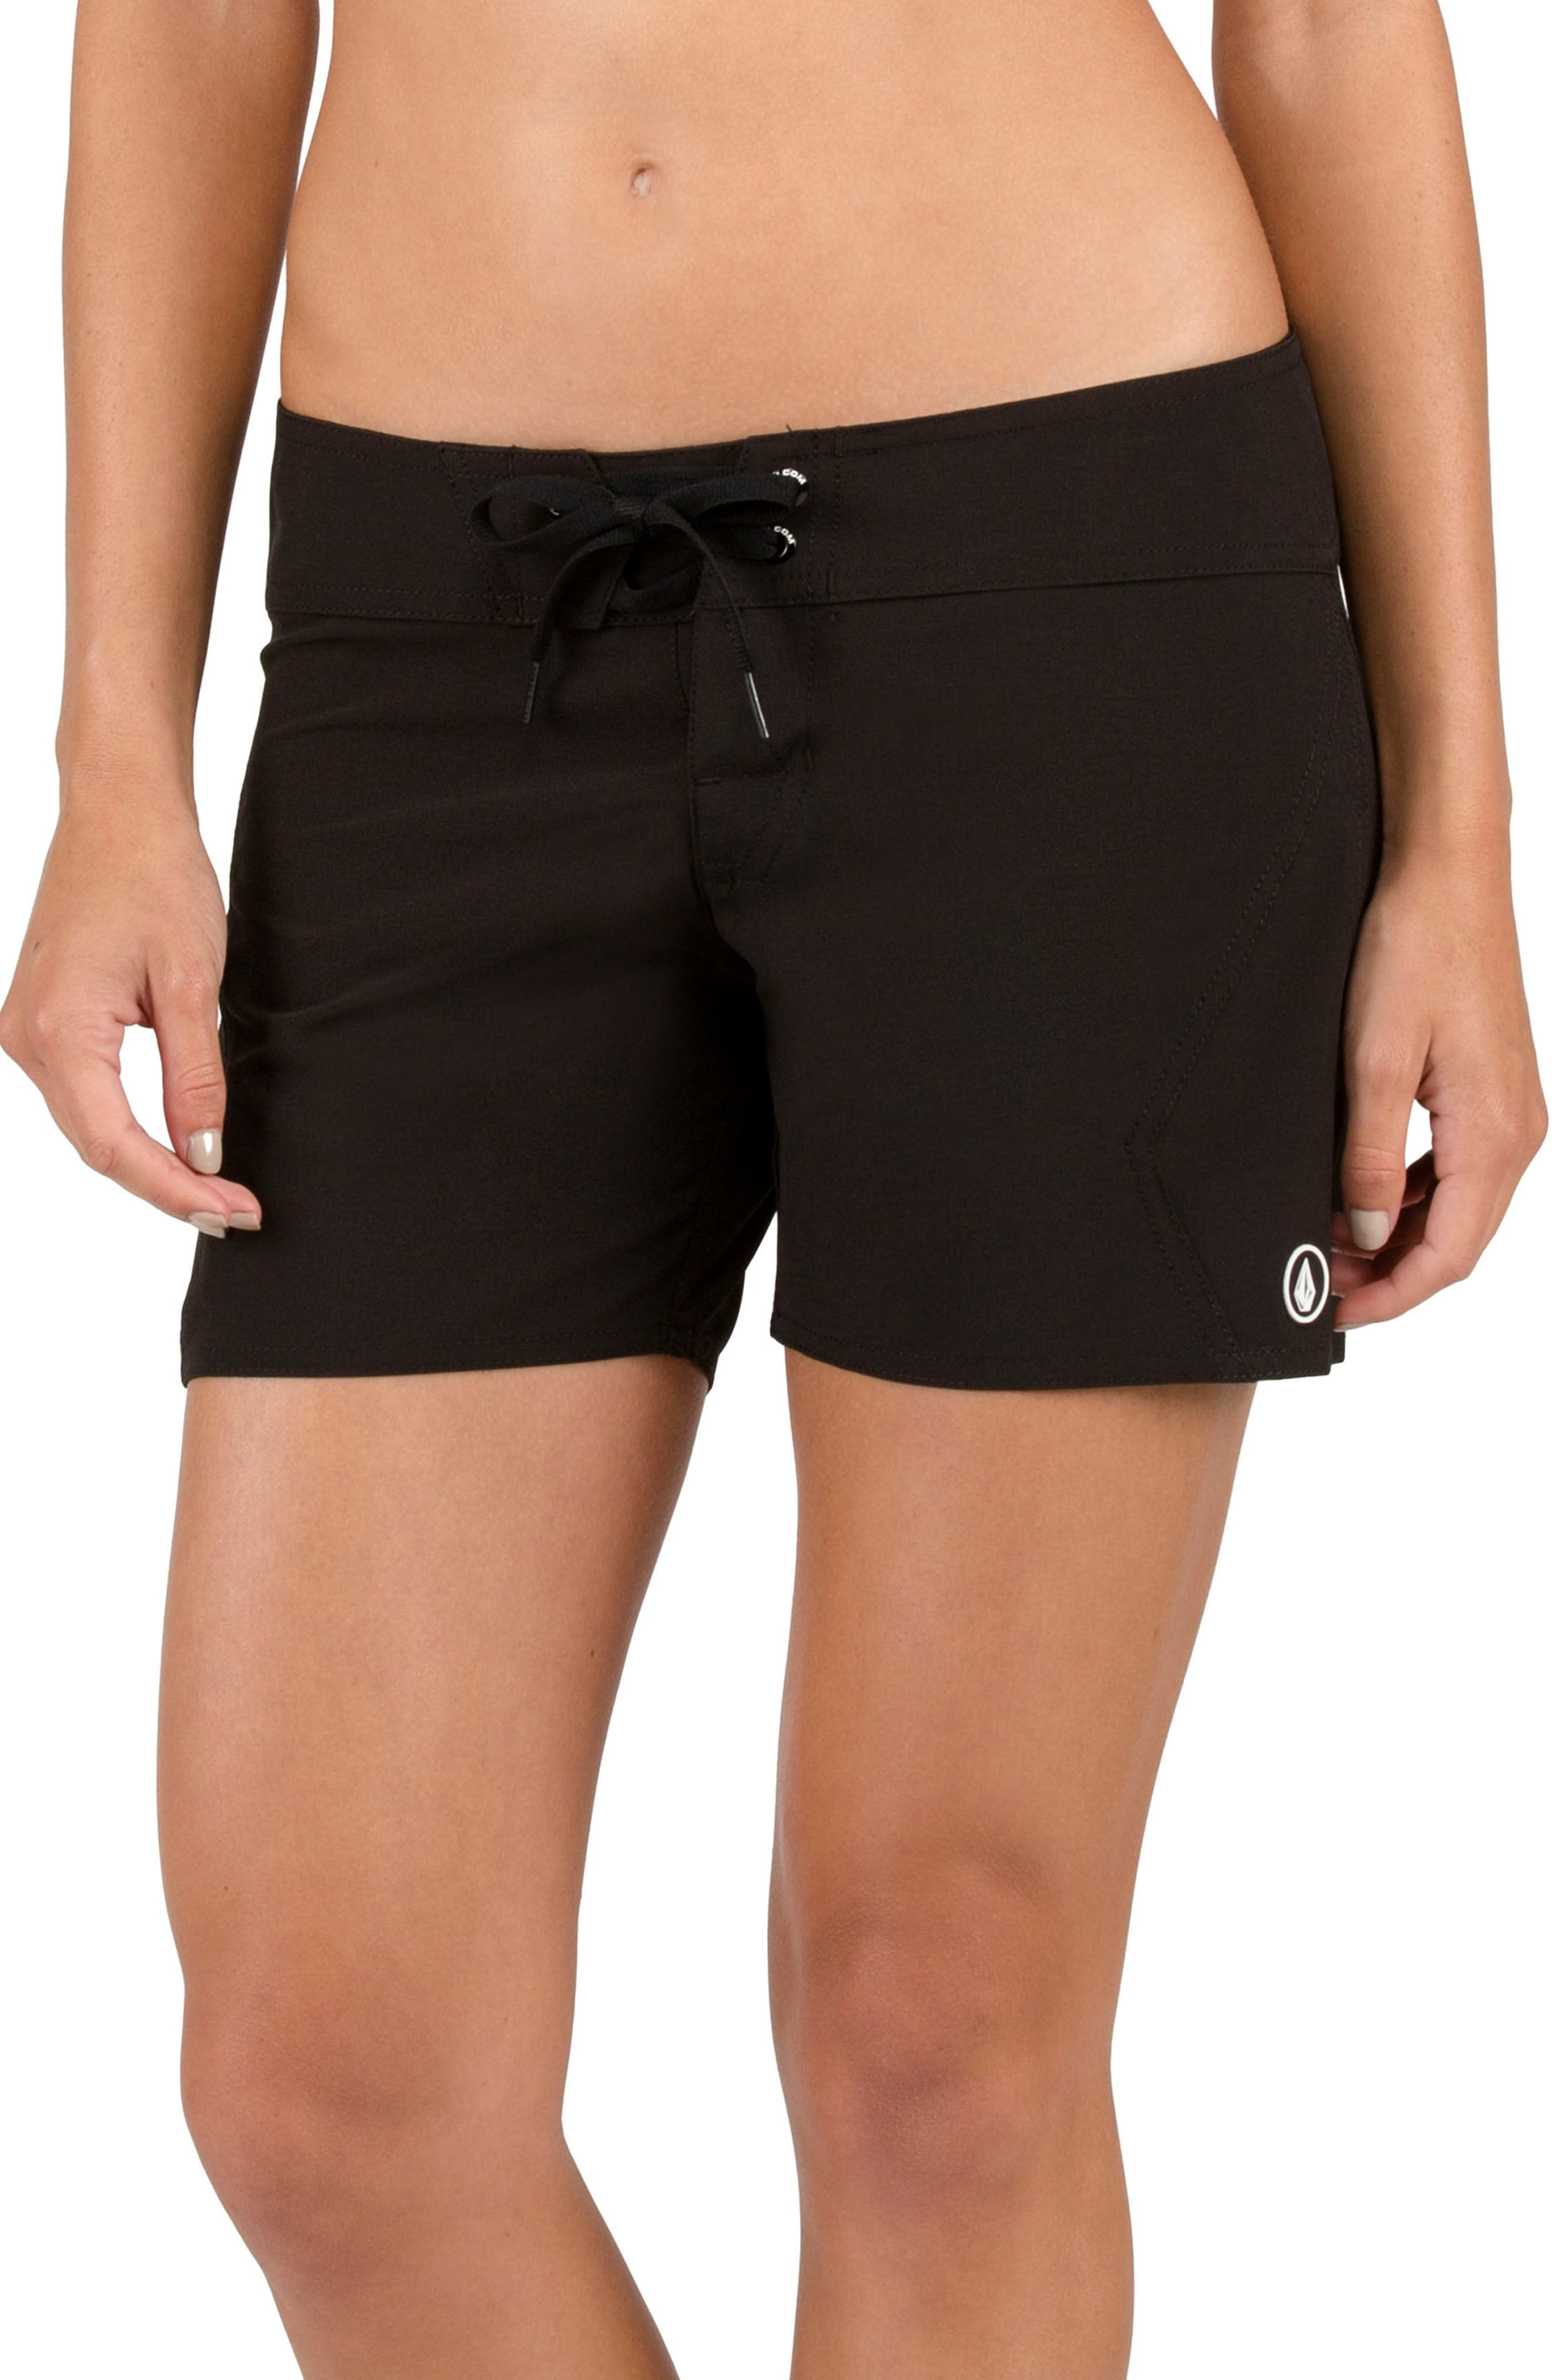 Simply Solid 5-Inch Board Shorts,                         Main,                         color, Black